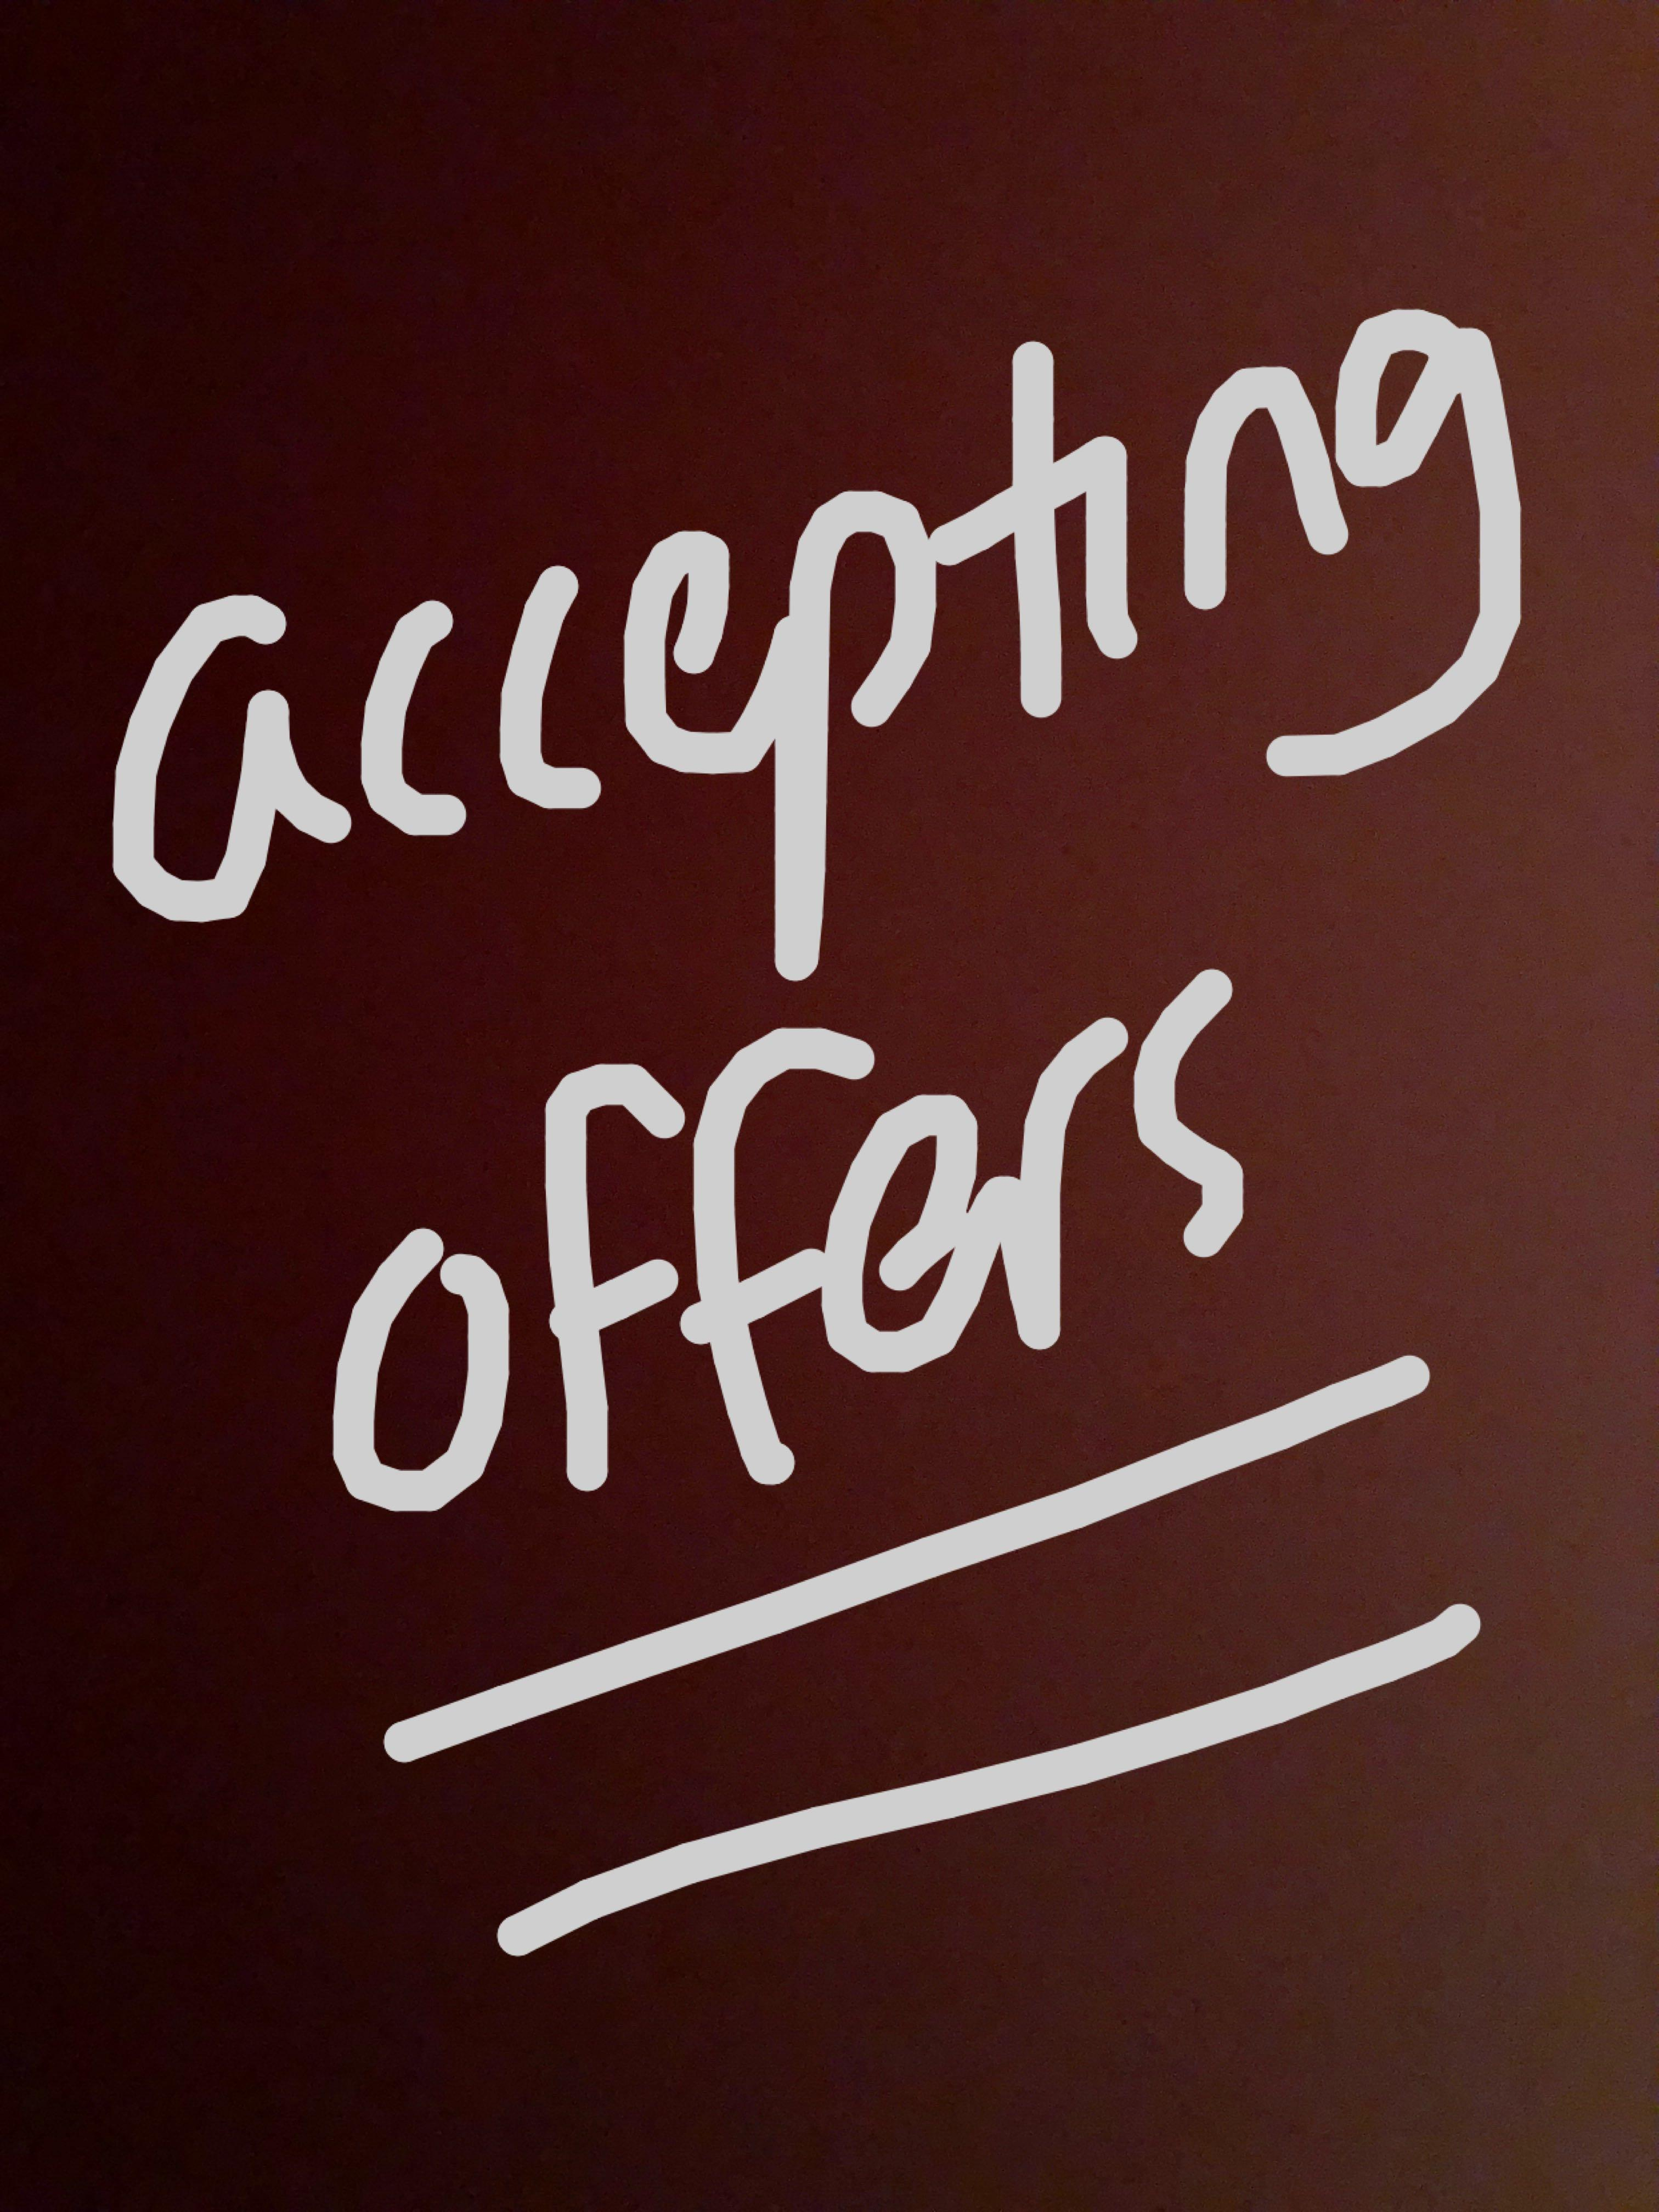 Accepting offers